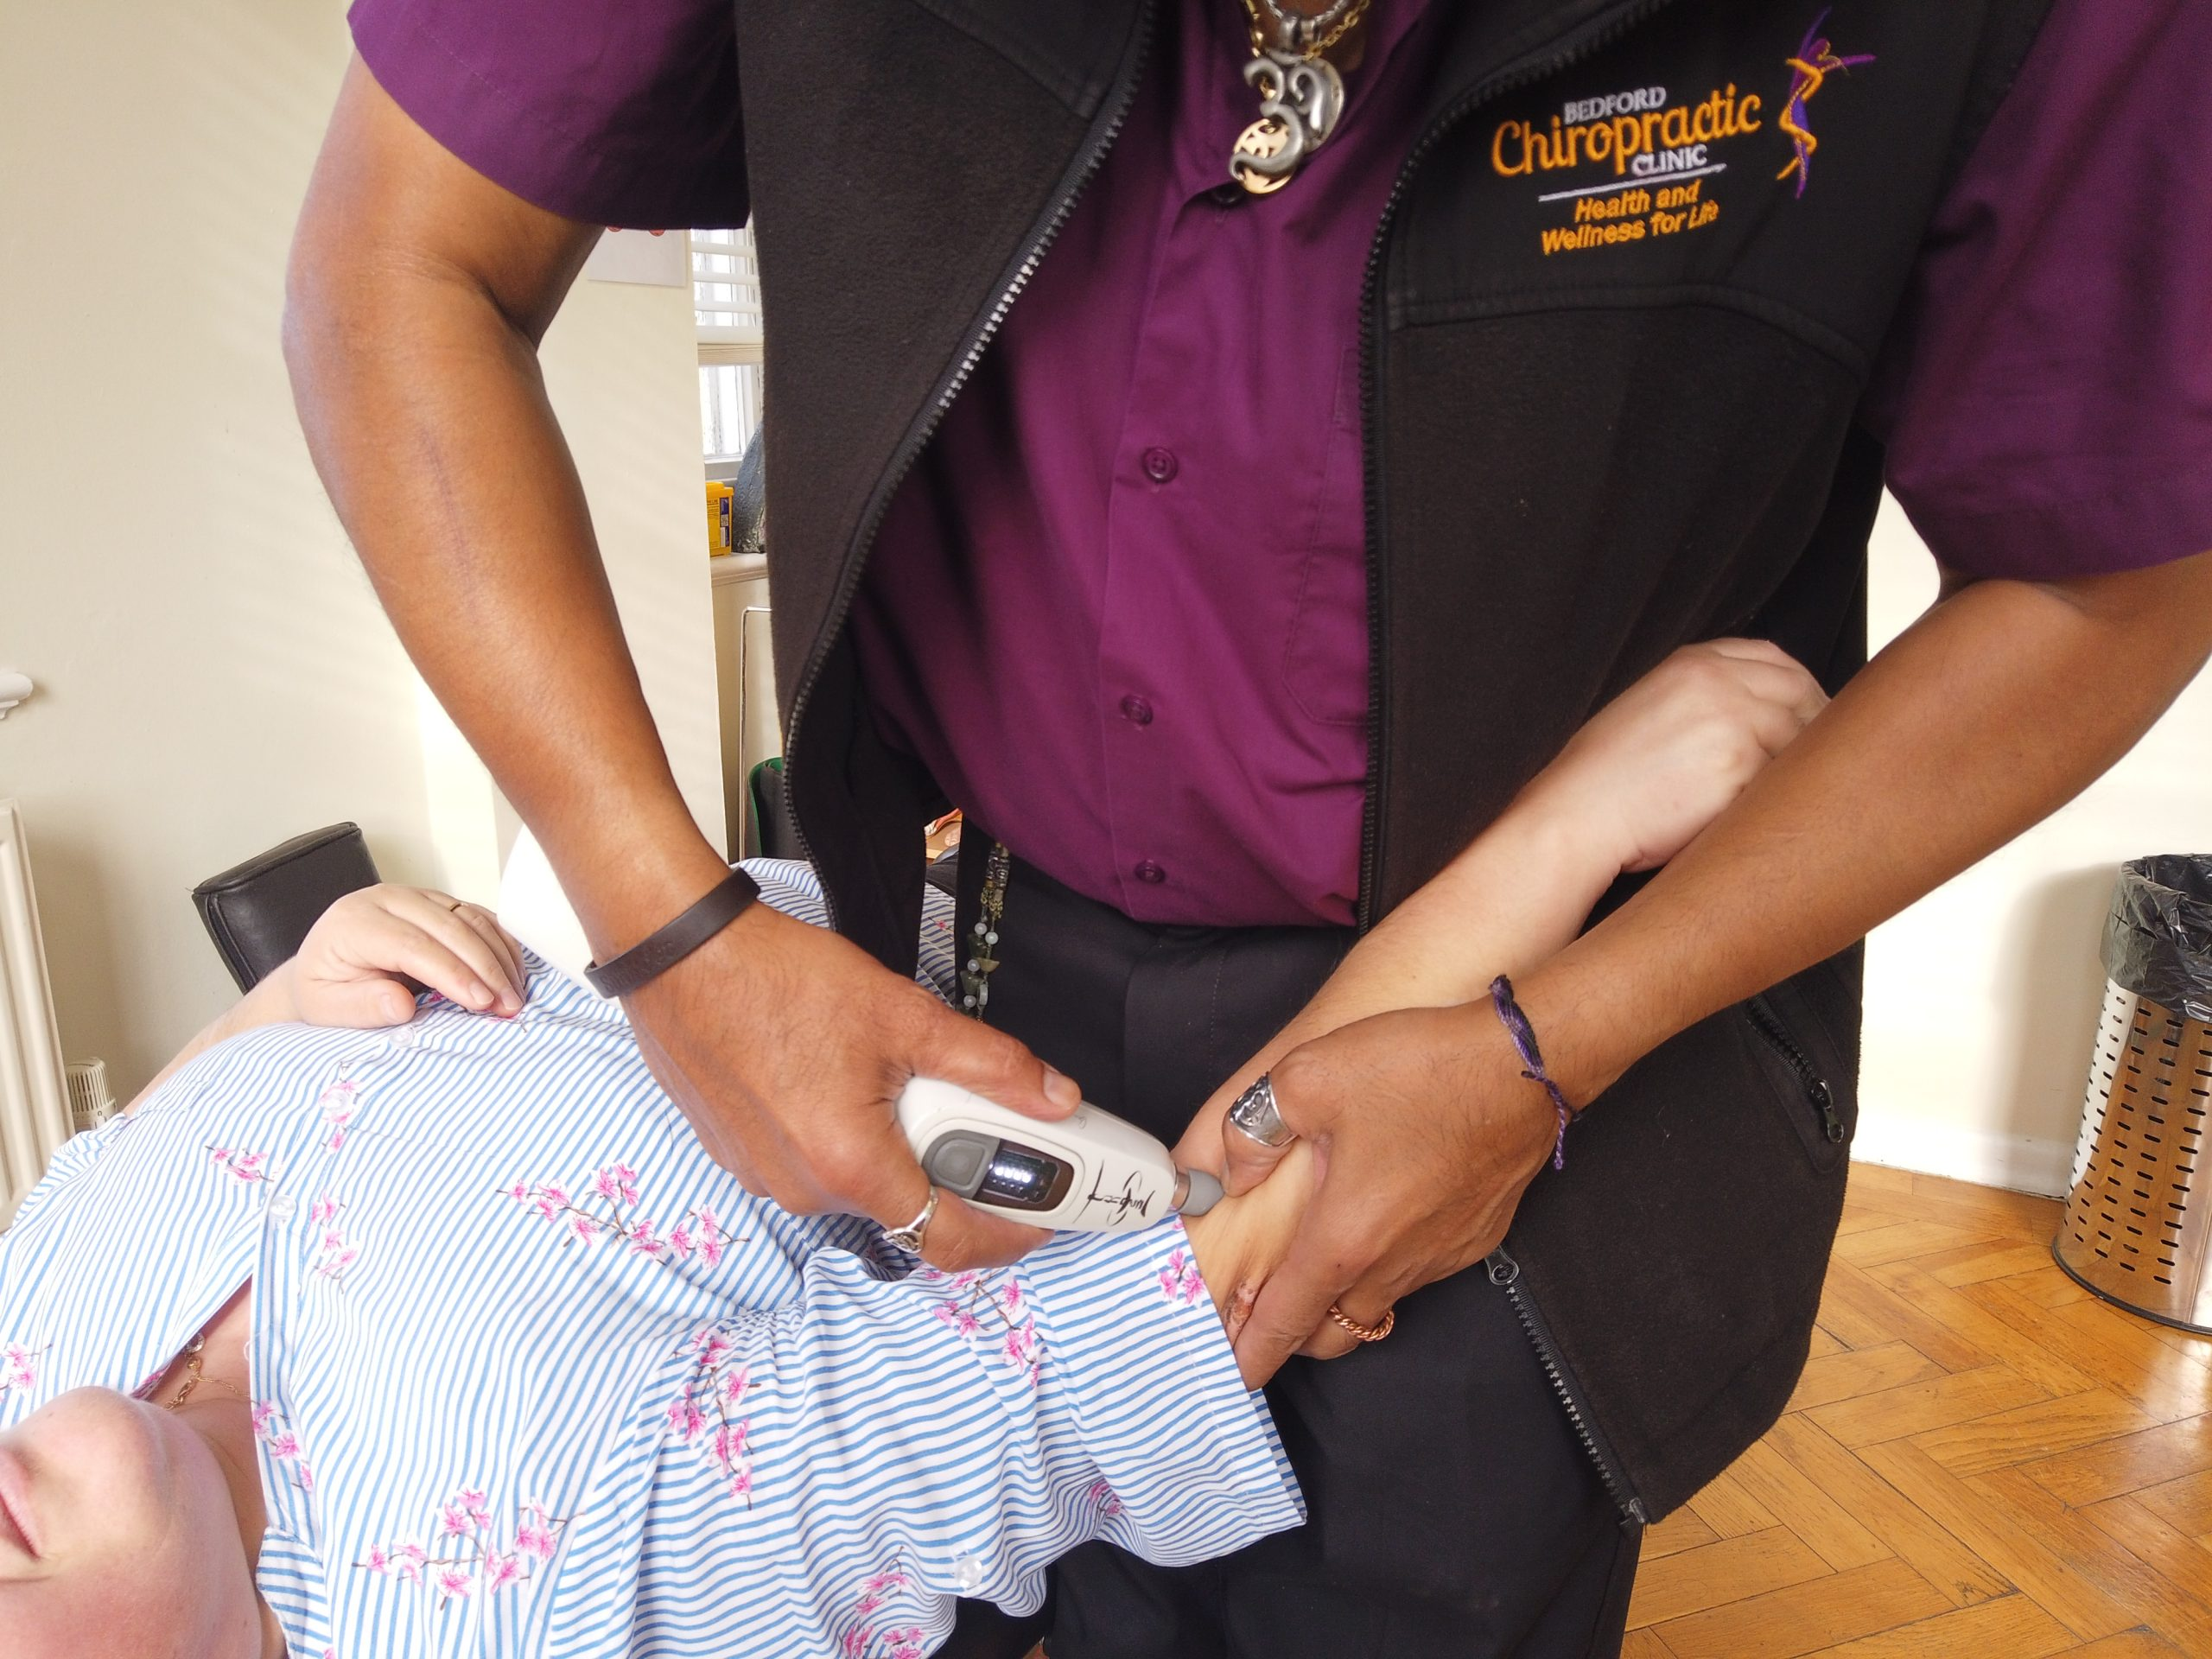 surinder sandhu at the bedford chiropractic clinic adjusting a misaligned elbow joint